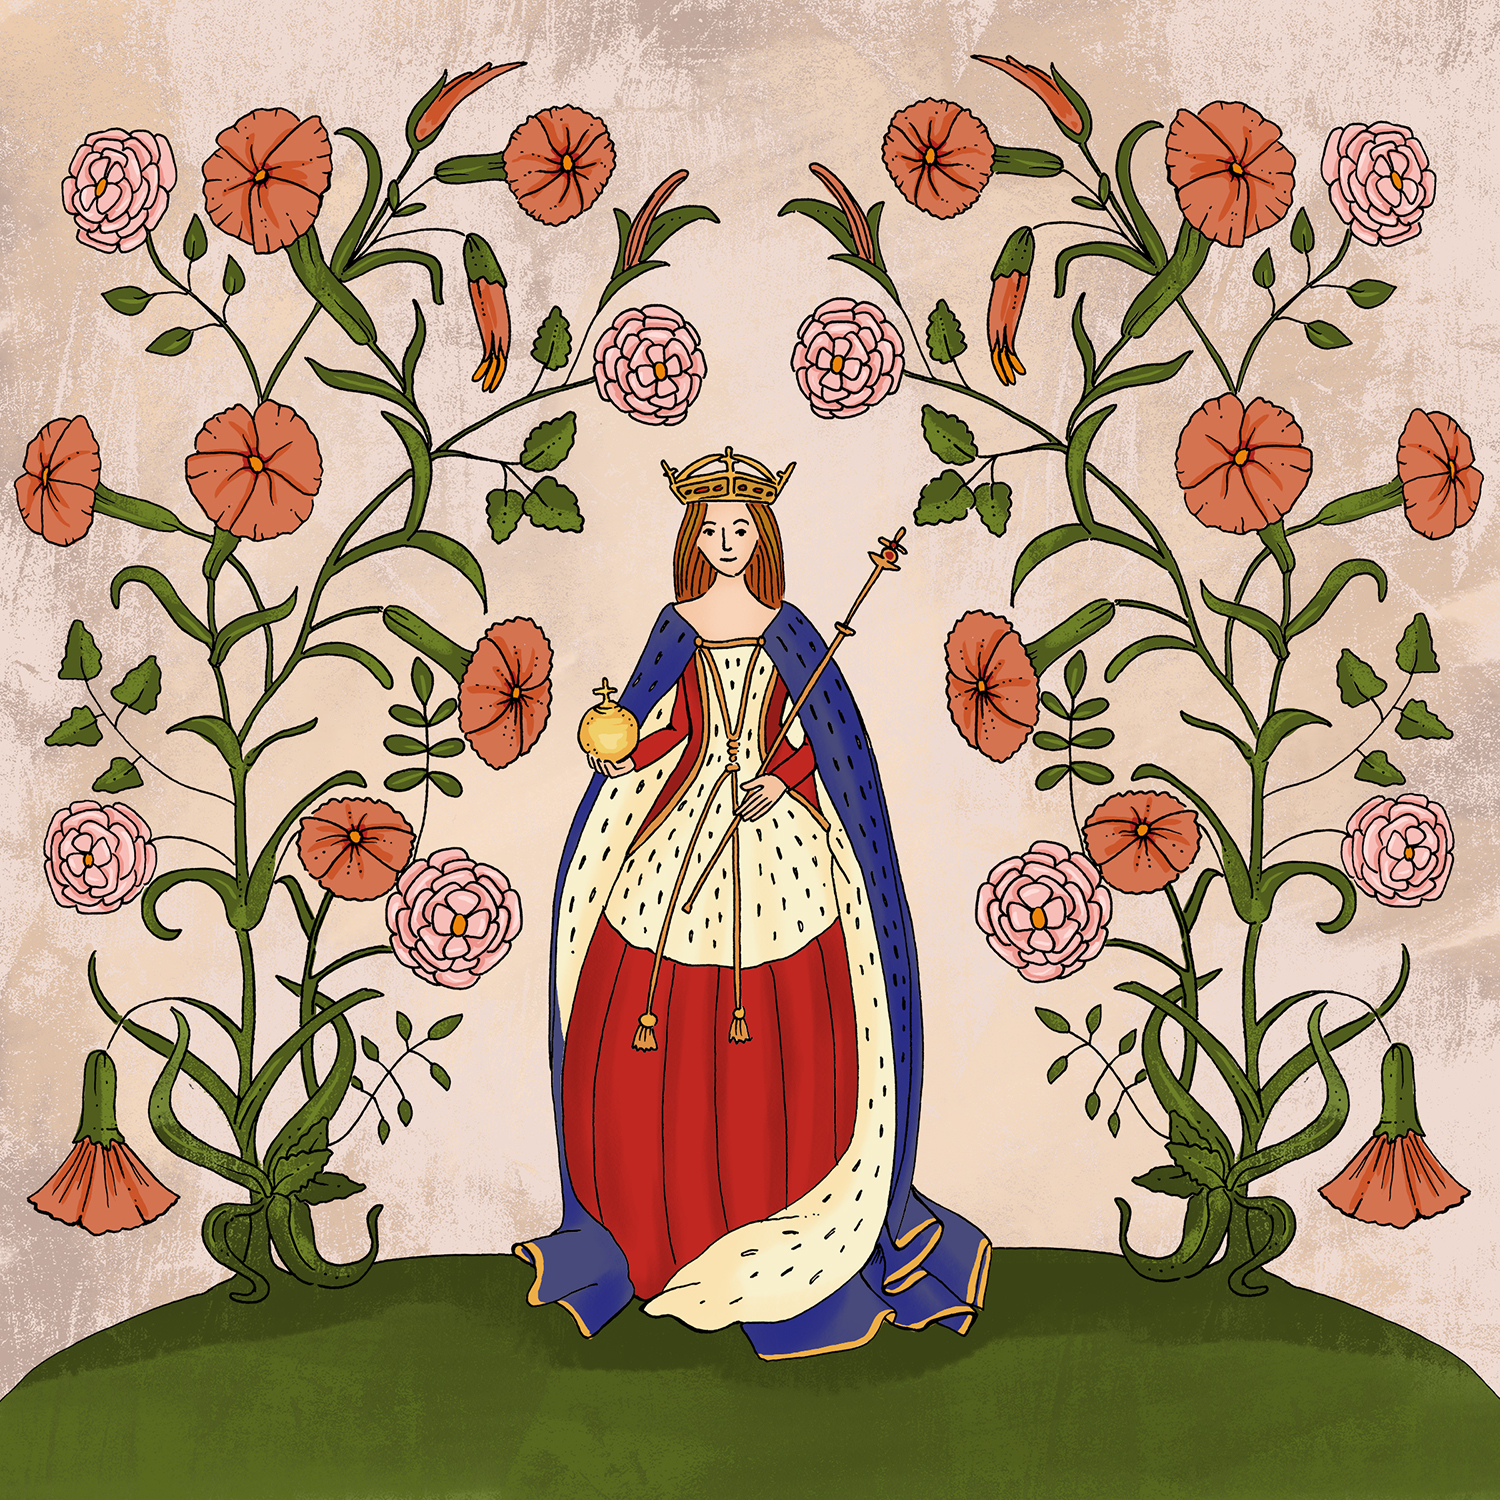 Elizabeth Woodville in Coronation Robes